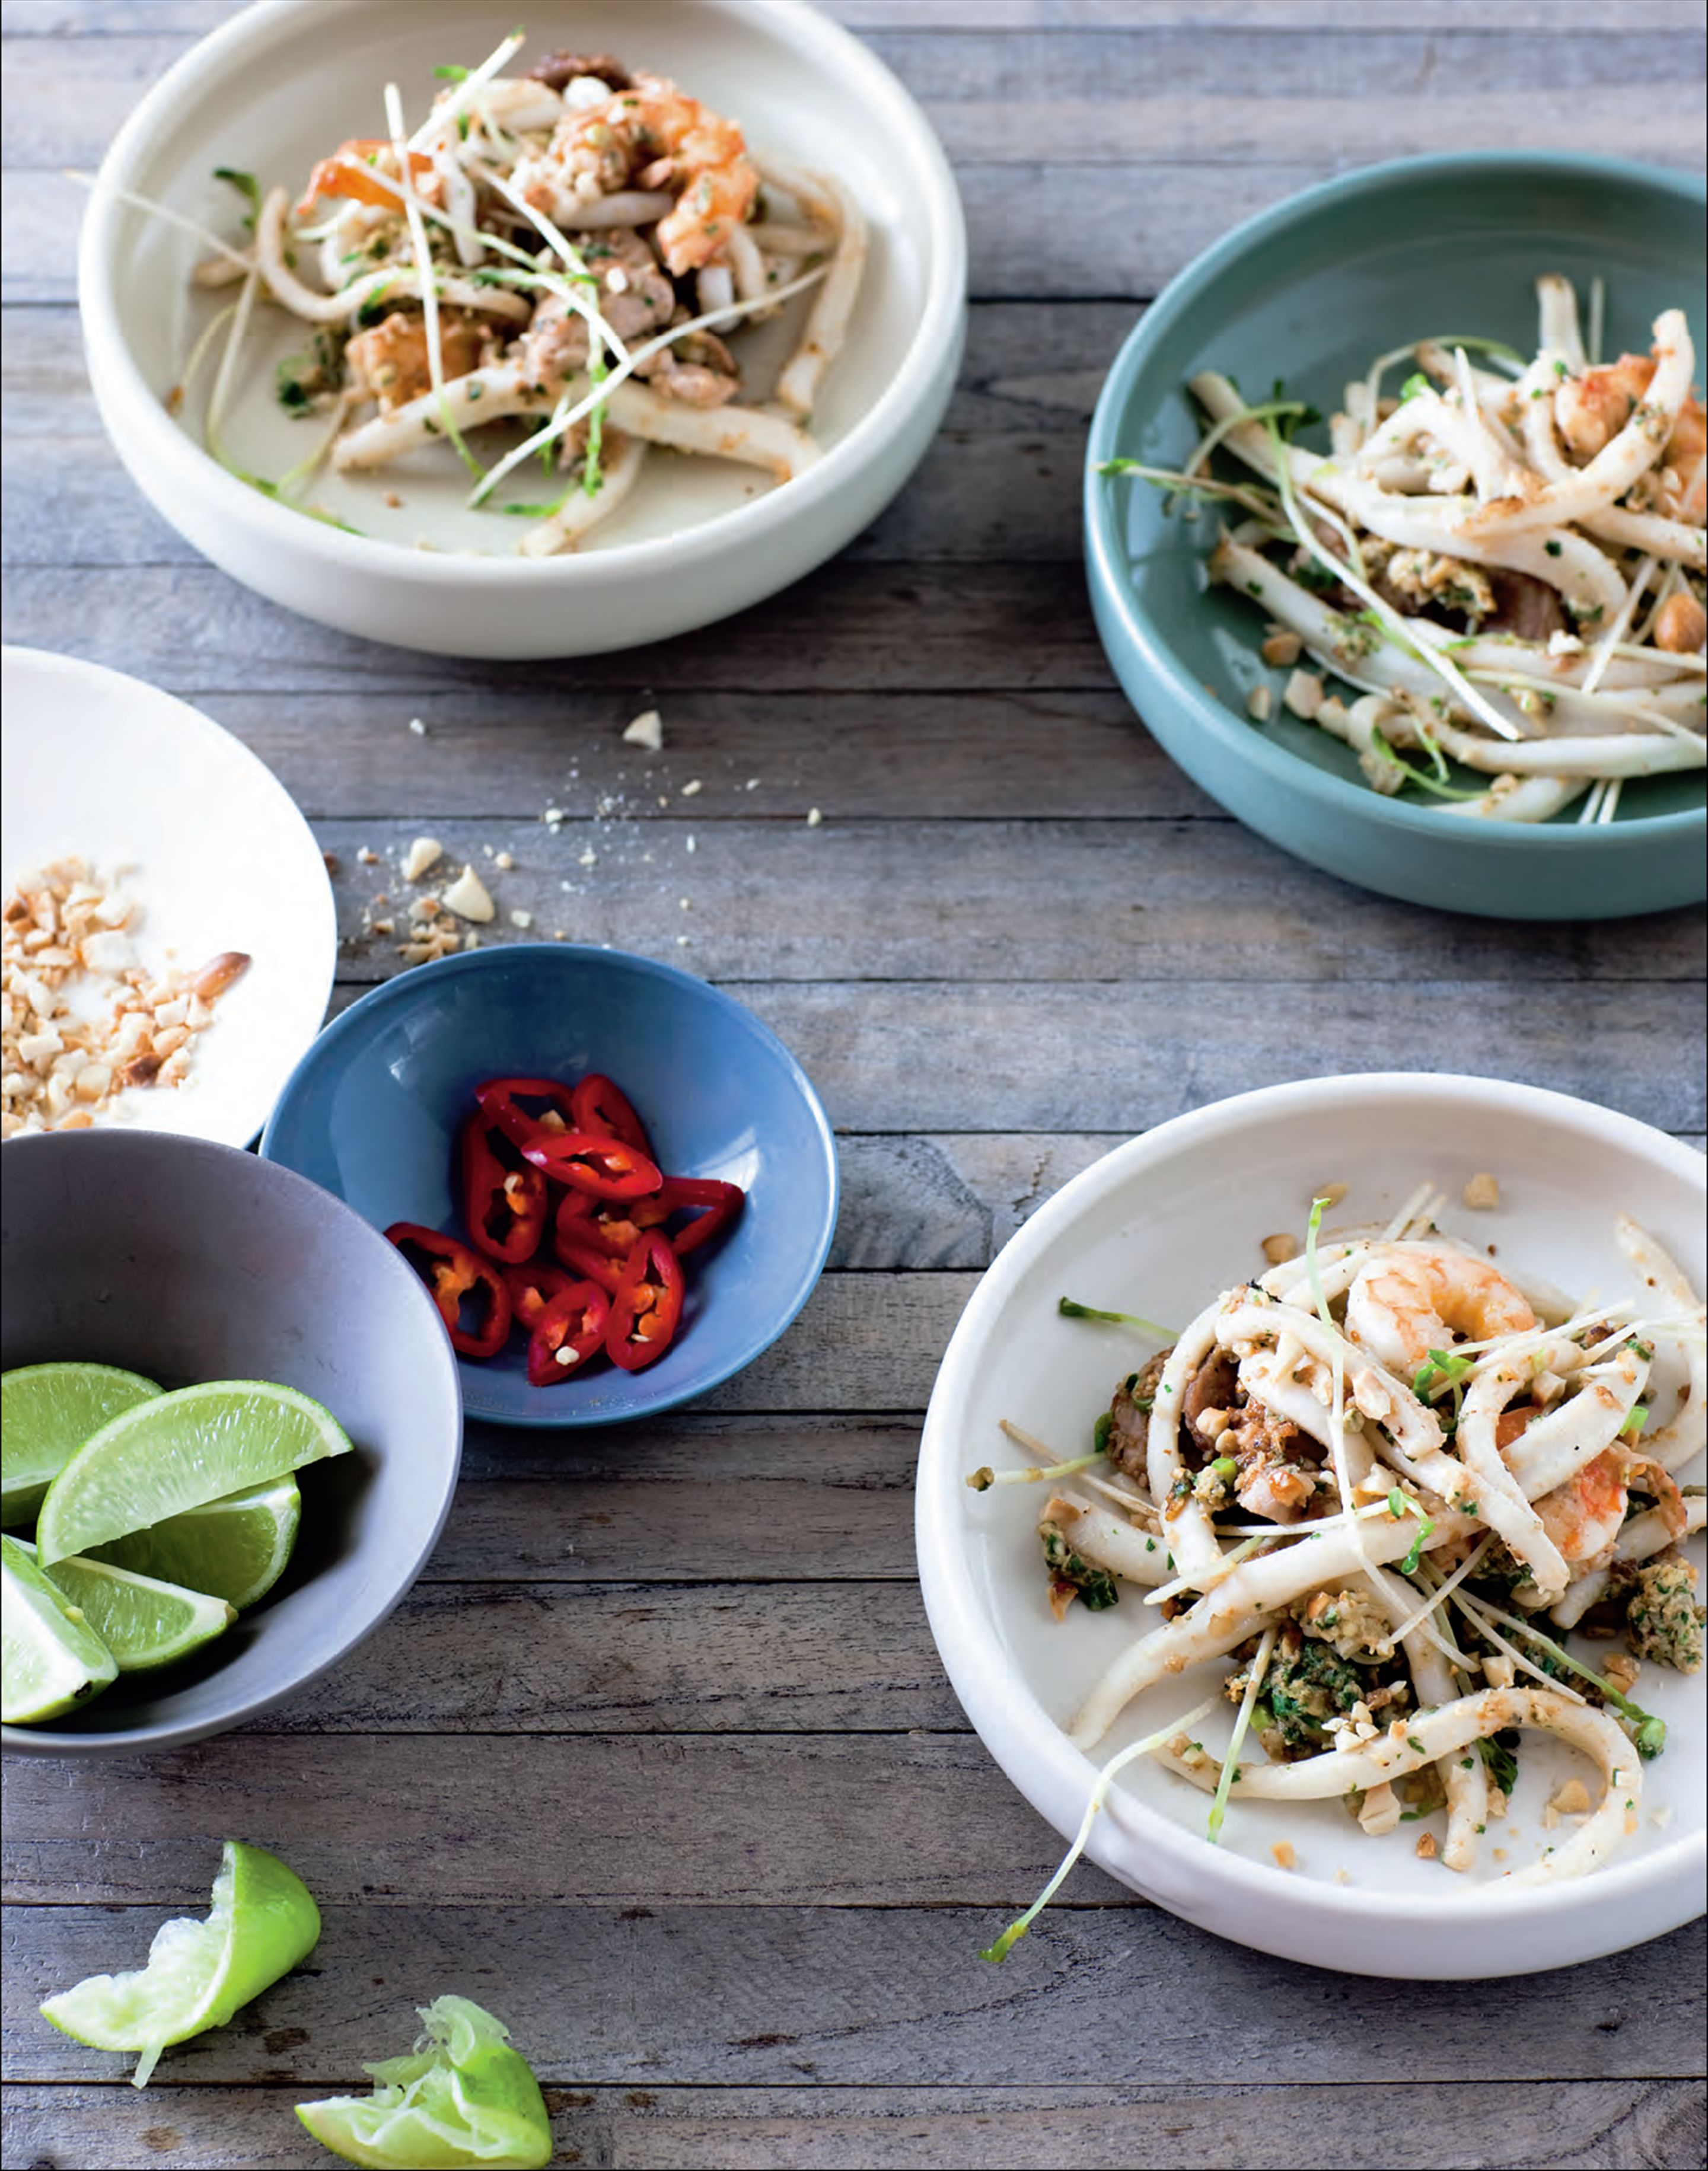 Pad Thai with squid 'noodles'